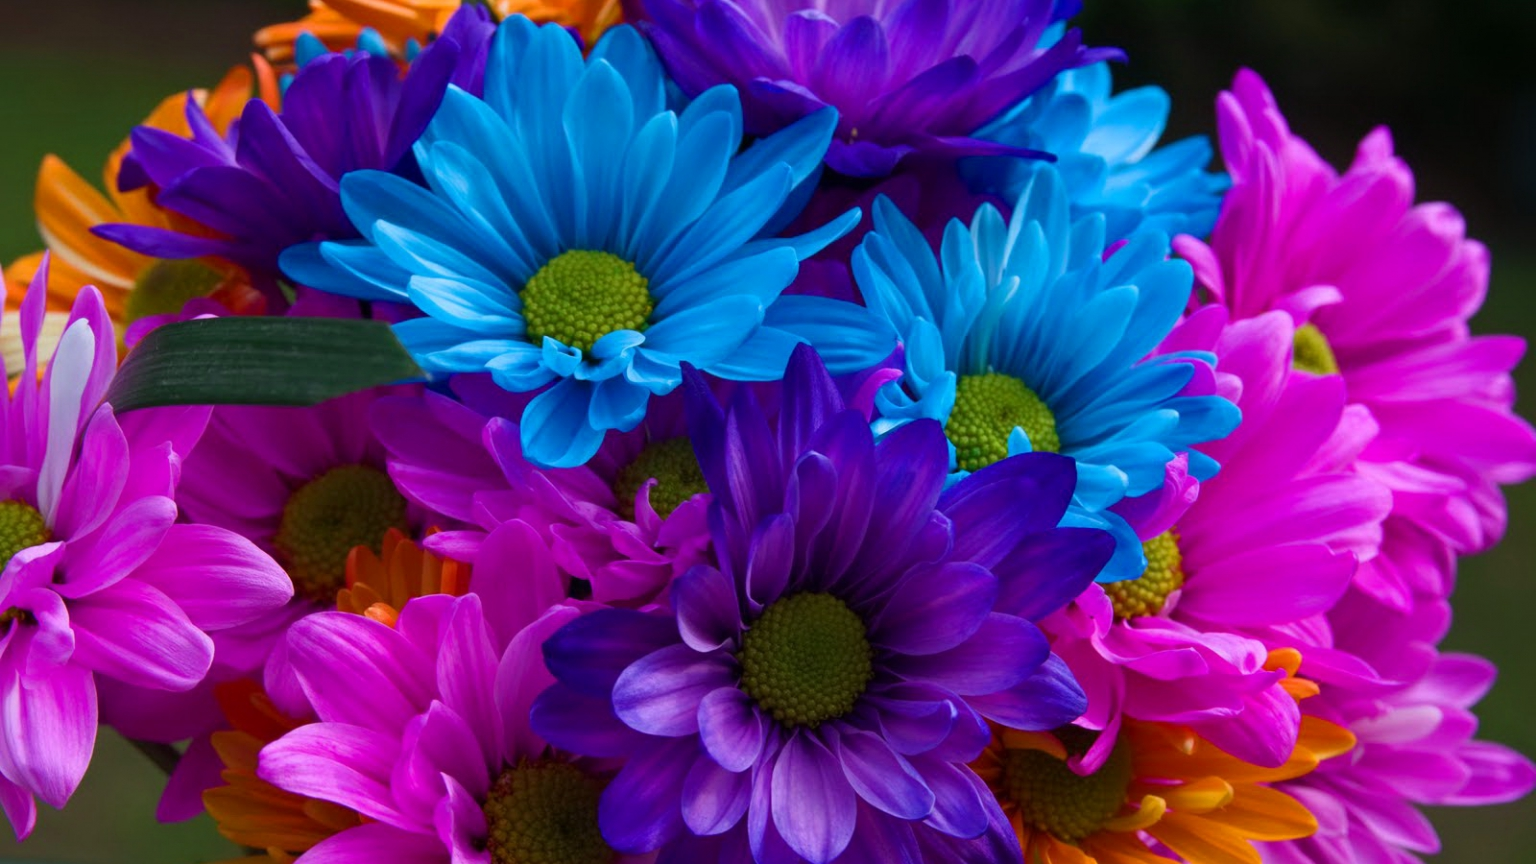 Free Colorful Flower Desktop Wallpaper: A Wild Bloom Wallpaper And Background Image